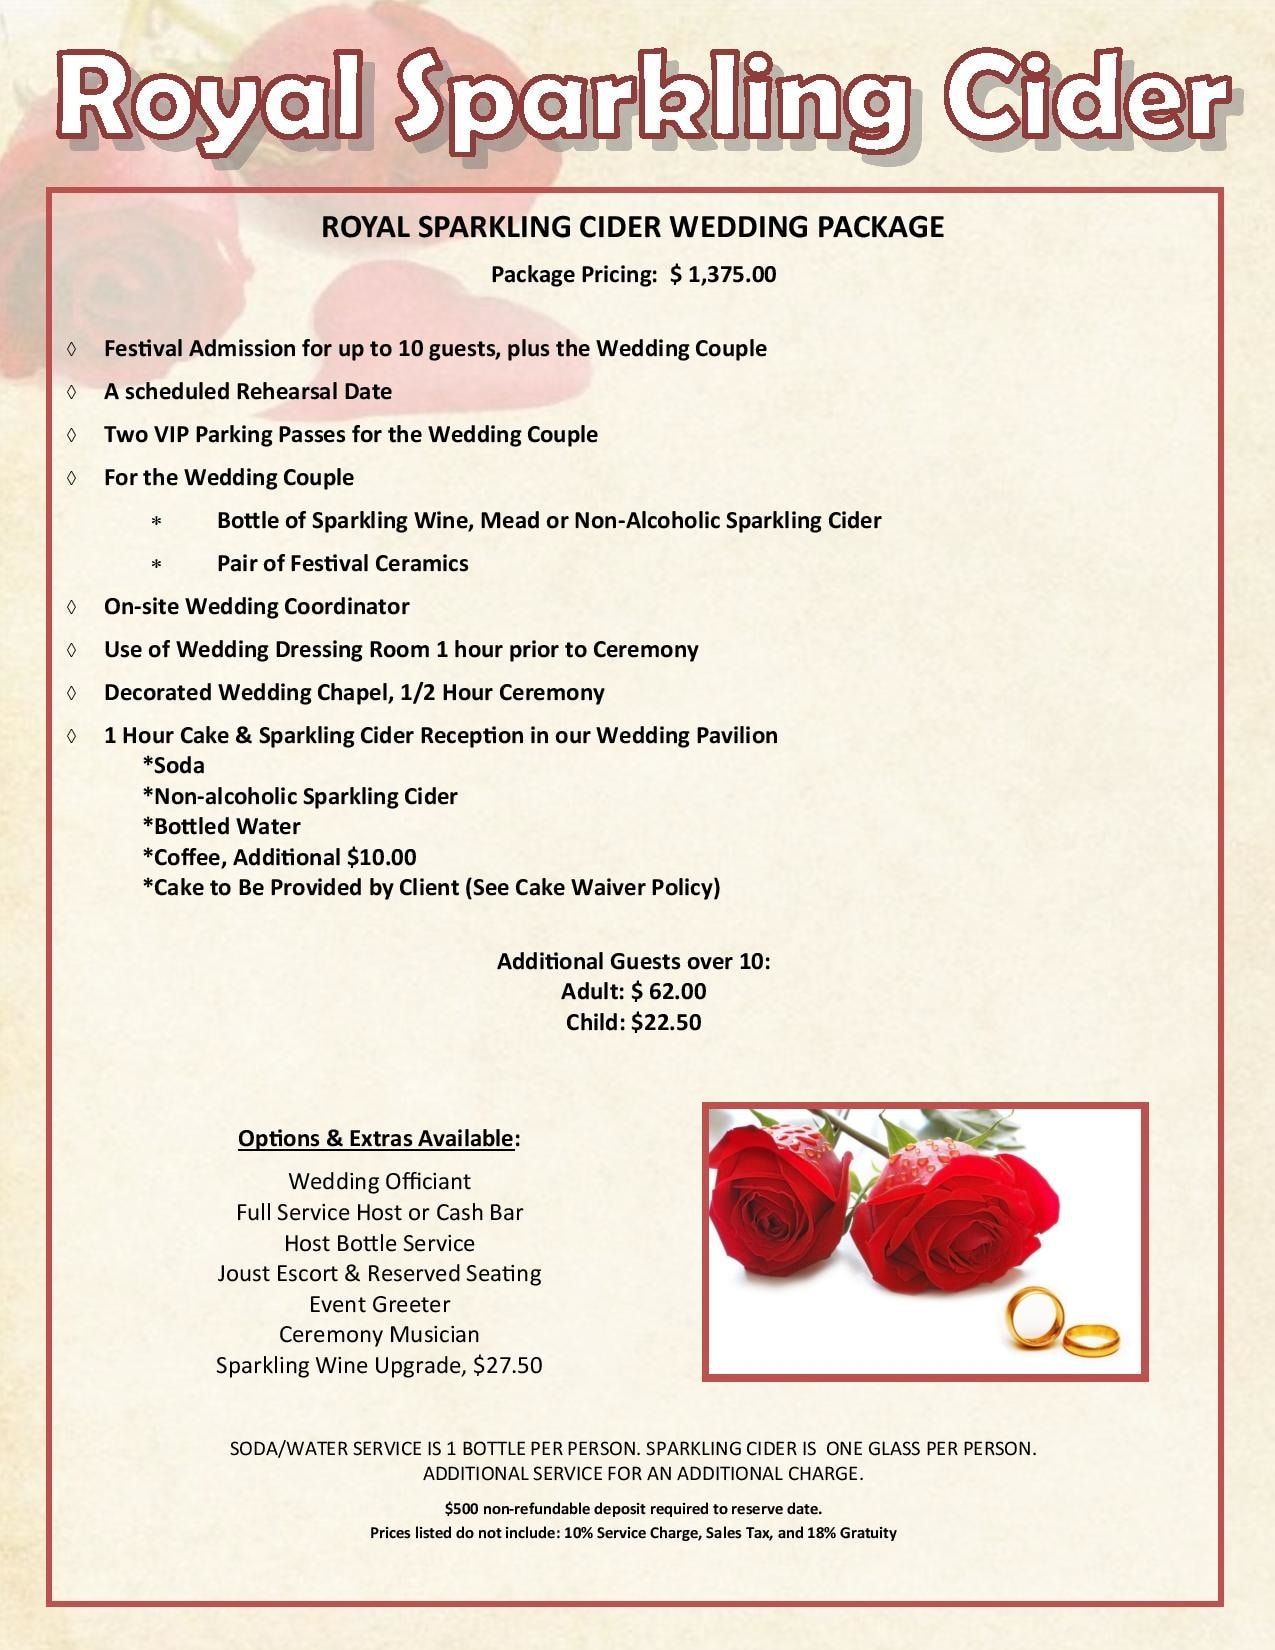 2022 Royal Sparkling Cider Wedding Package